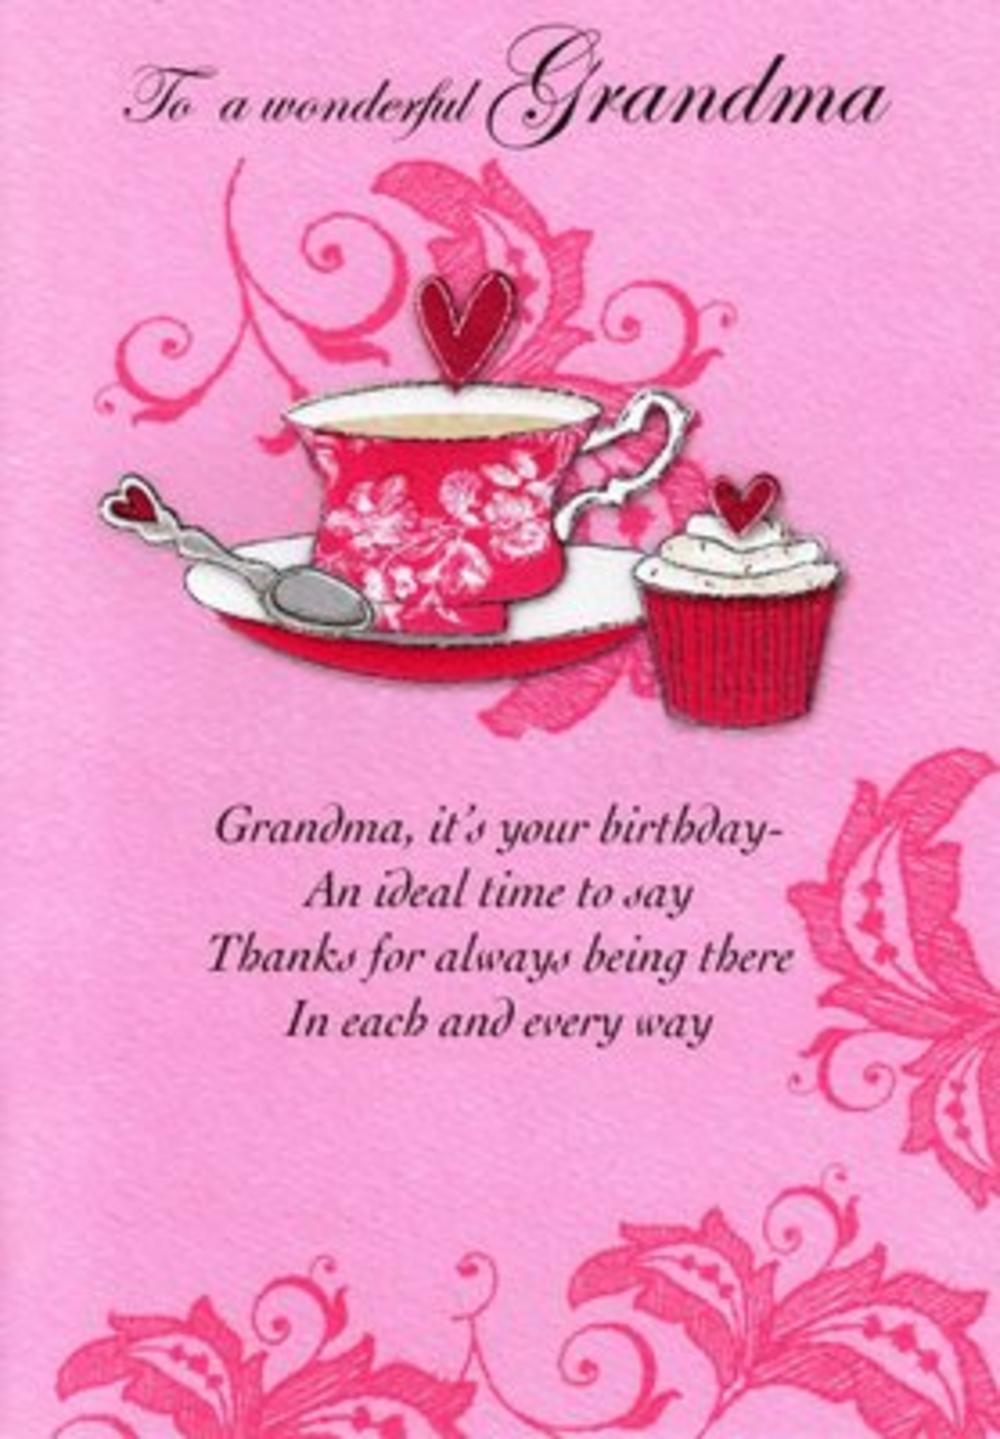 Grandma birthday poetry in motion card cards love kates grandma birthday poetry in motion card bookmarktalkfo Image collections